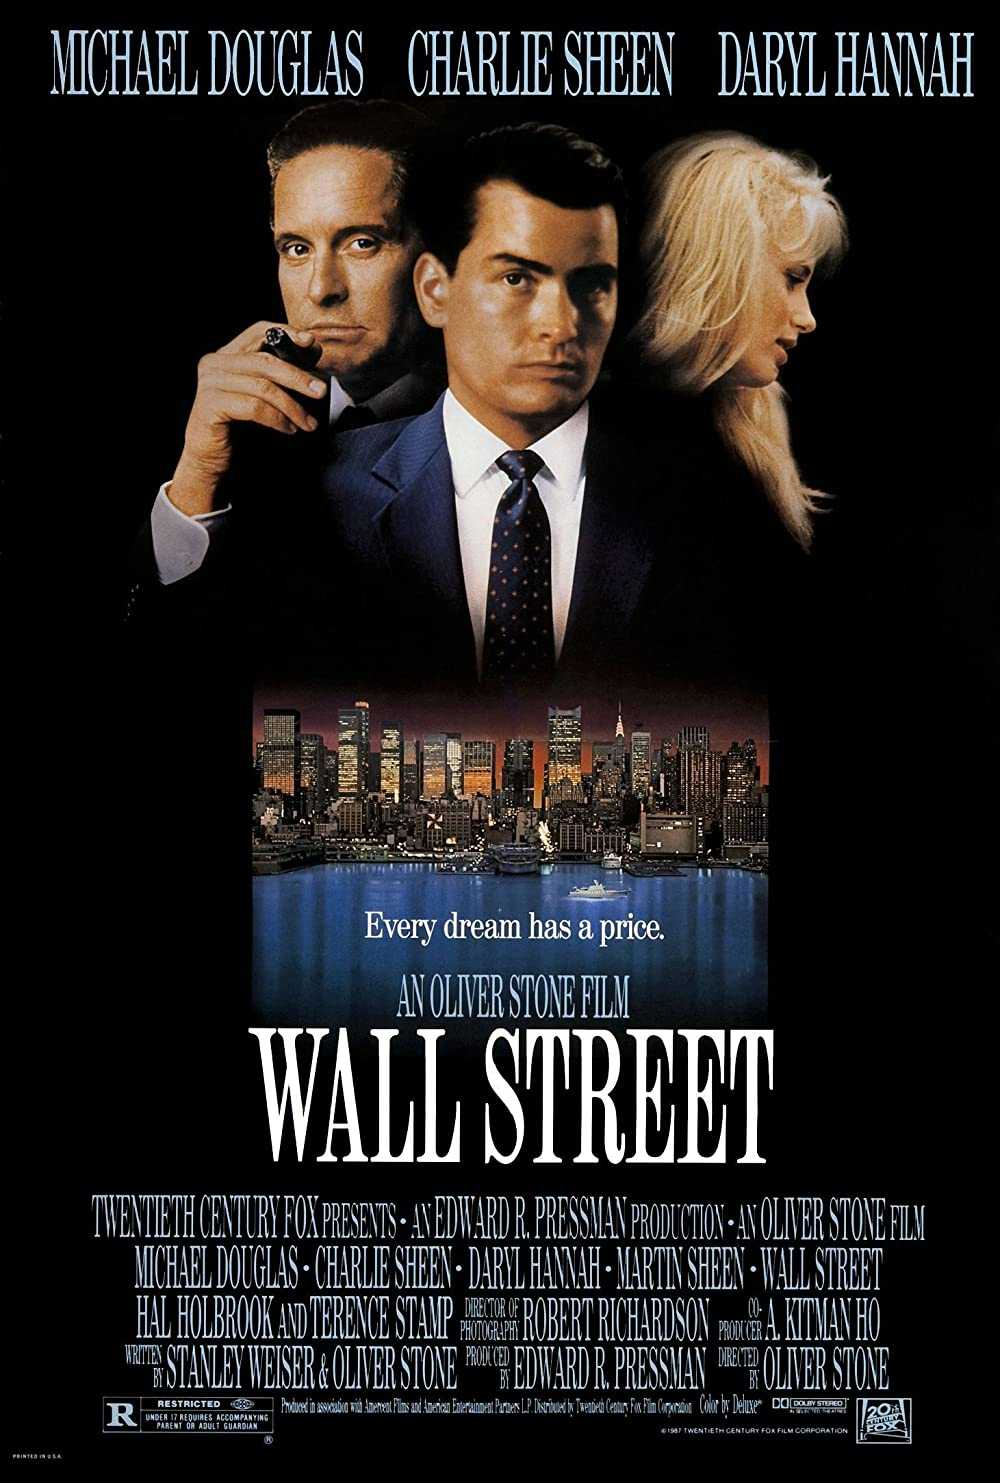 Wall Street Movie at Best Stock Market movies article - Arable Life